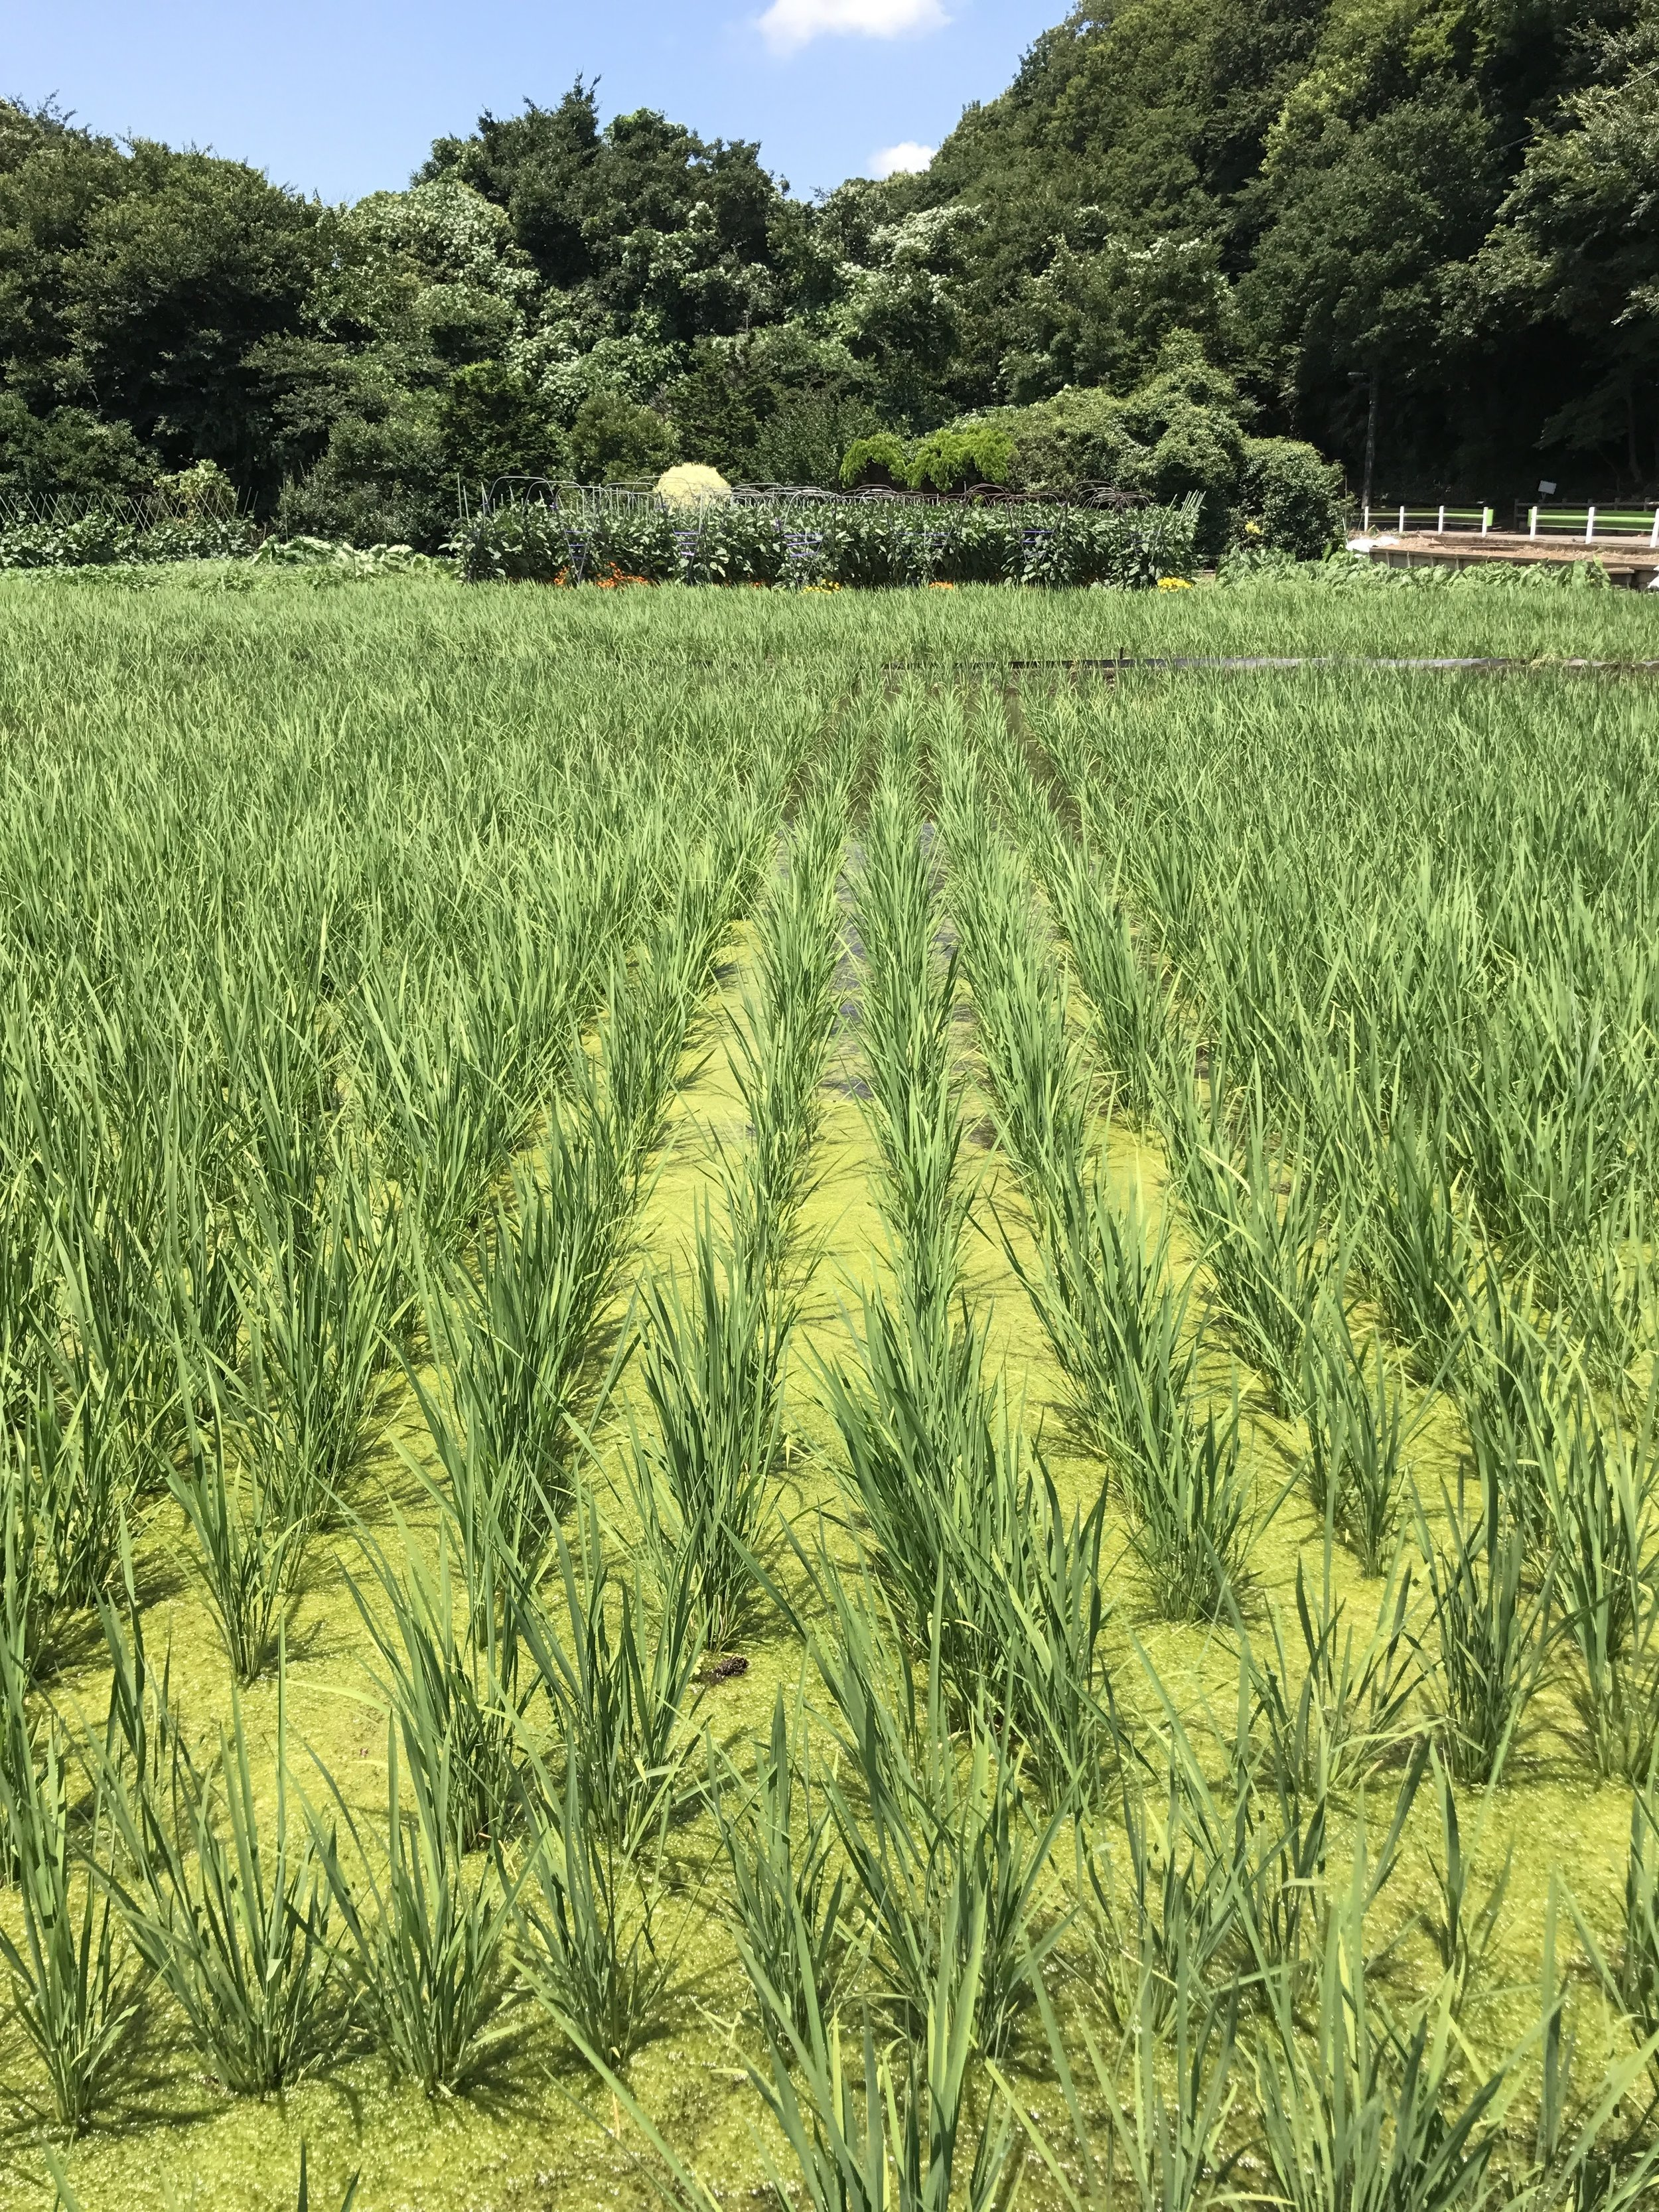 Rice Paddy in Japan